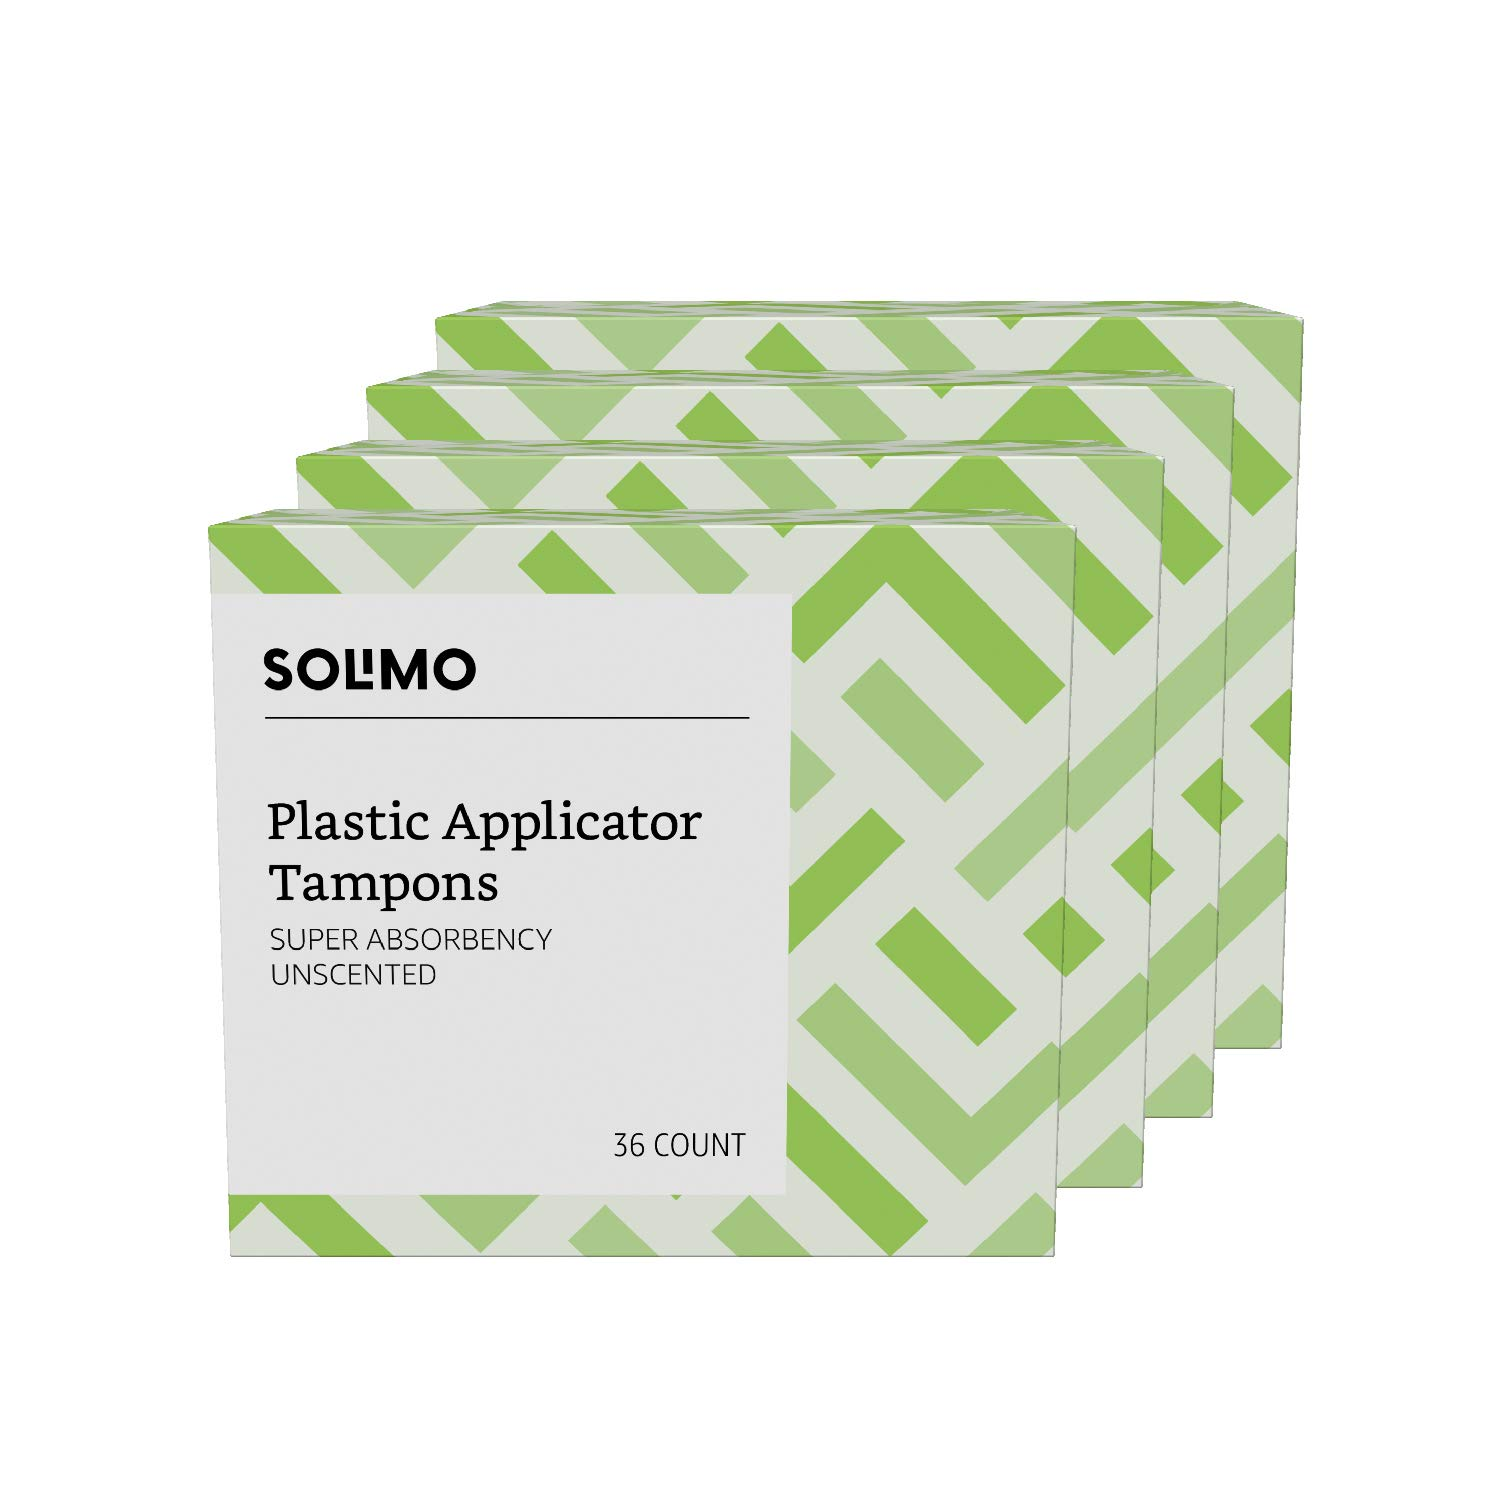 Amazon Brand - Solimo Plastic Applicator Tampons, Super Absorbency, Unscented, 144 Count